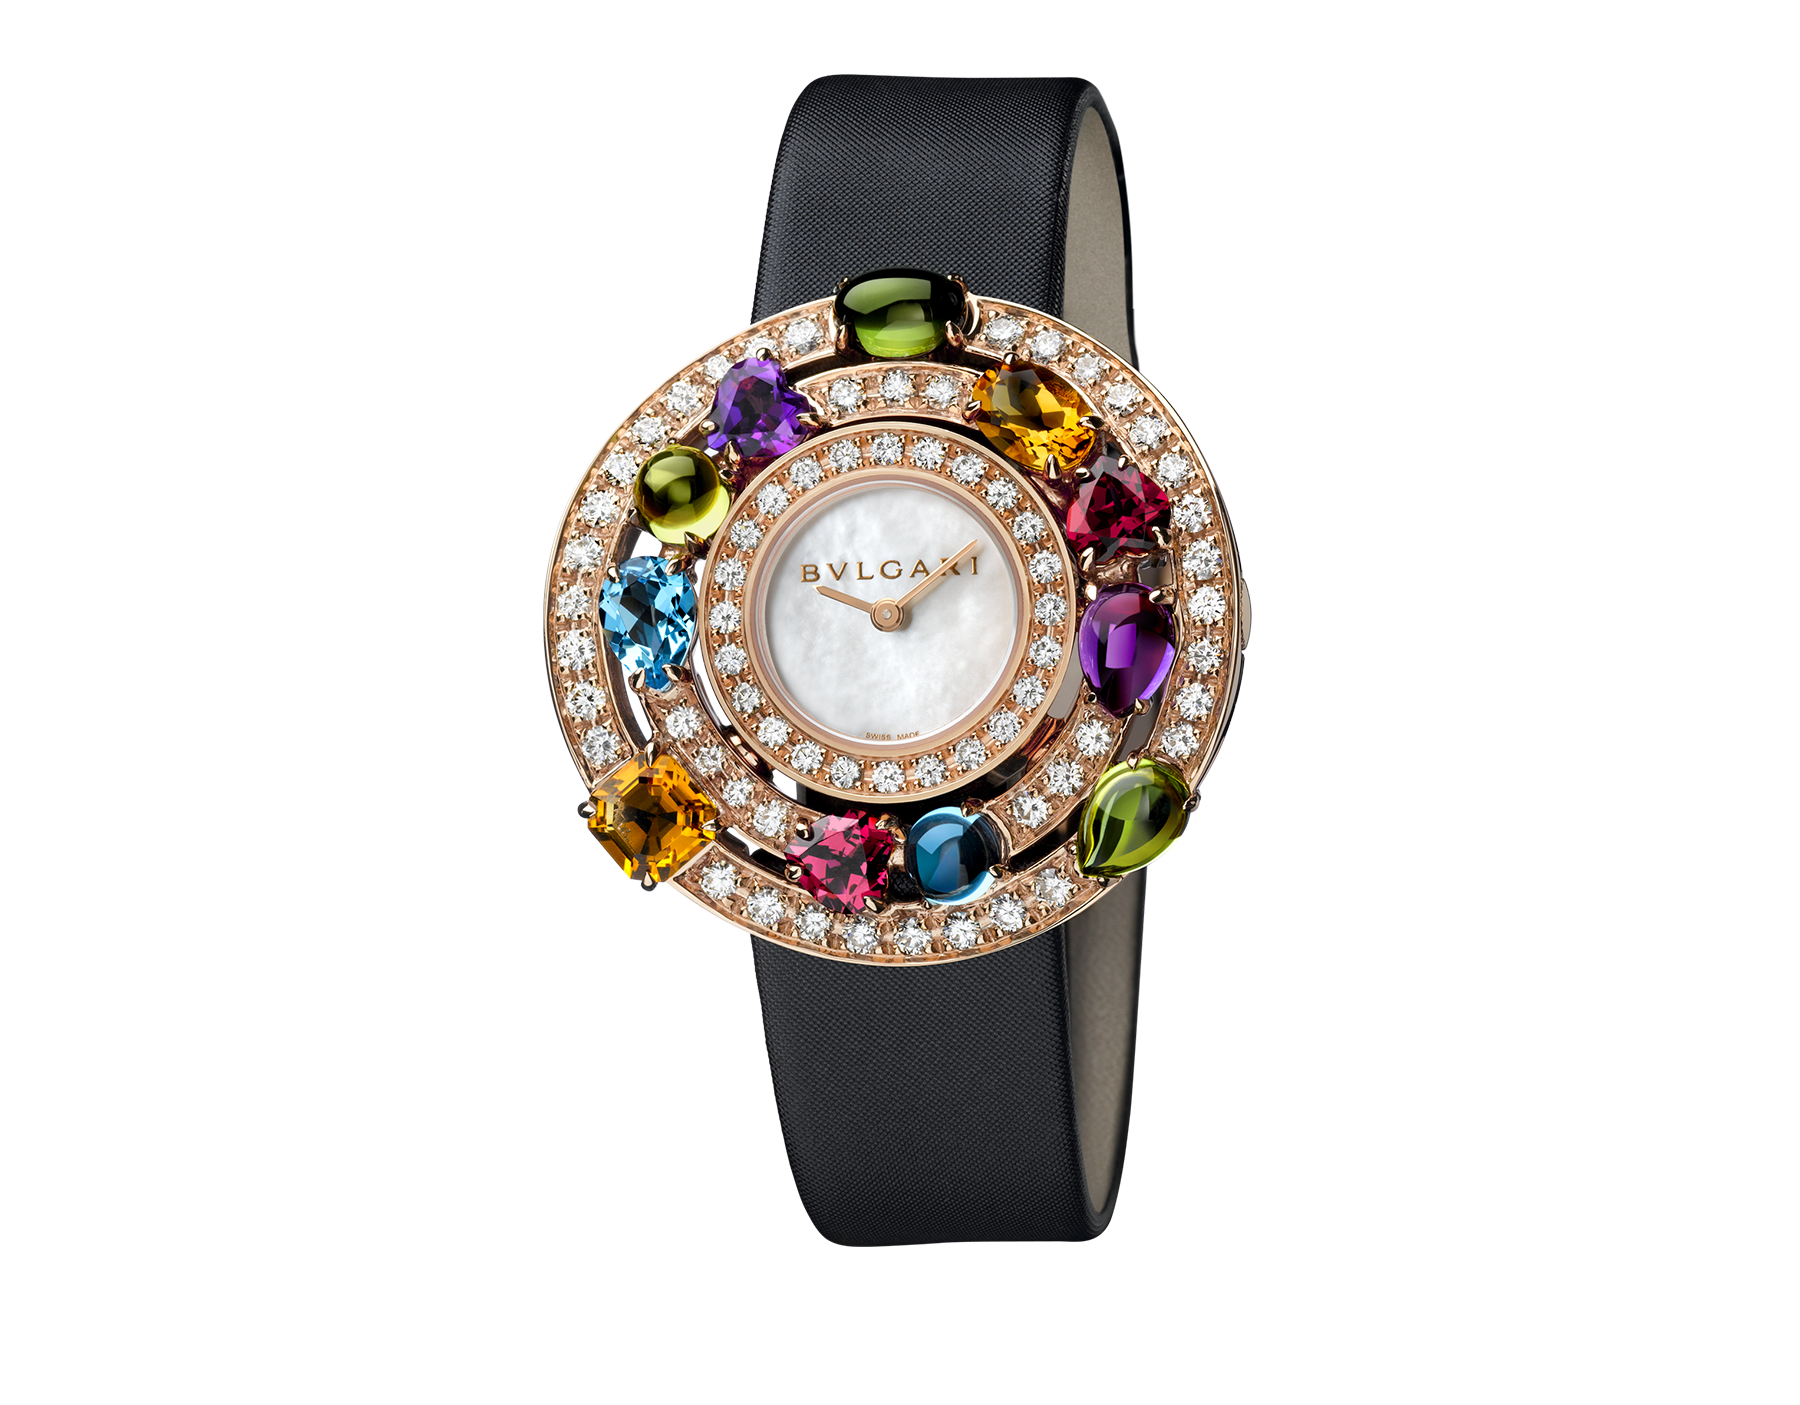 Astrale watch with 18 kt rose gold case set with brilliant-cut diamonds and fancy-cut coloured gemstones, white mother-of-pearl dial and black satin bracelet 102011 image 1